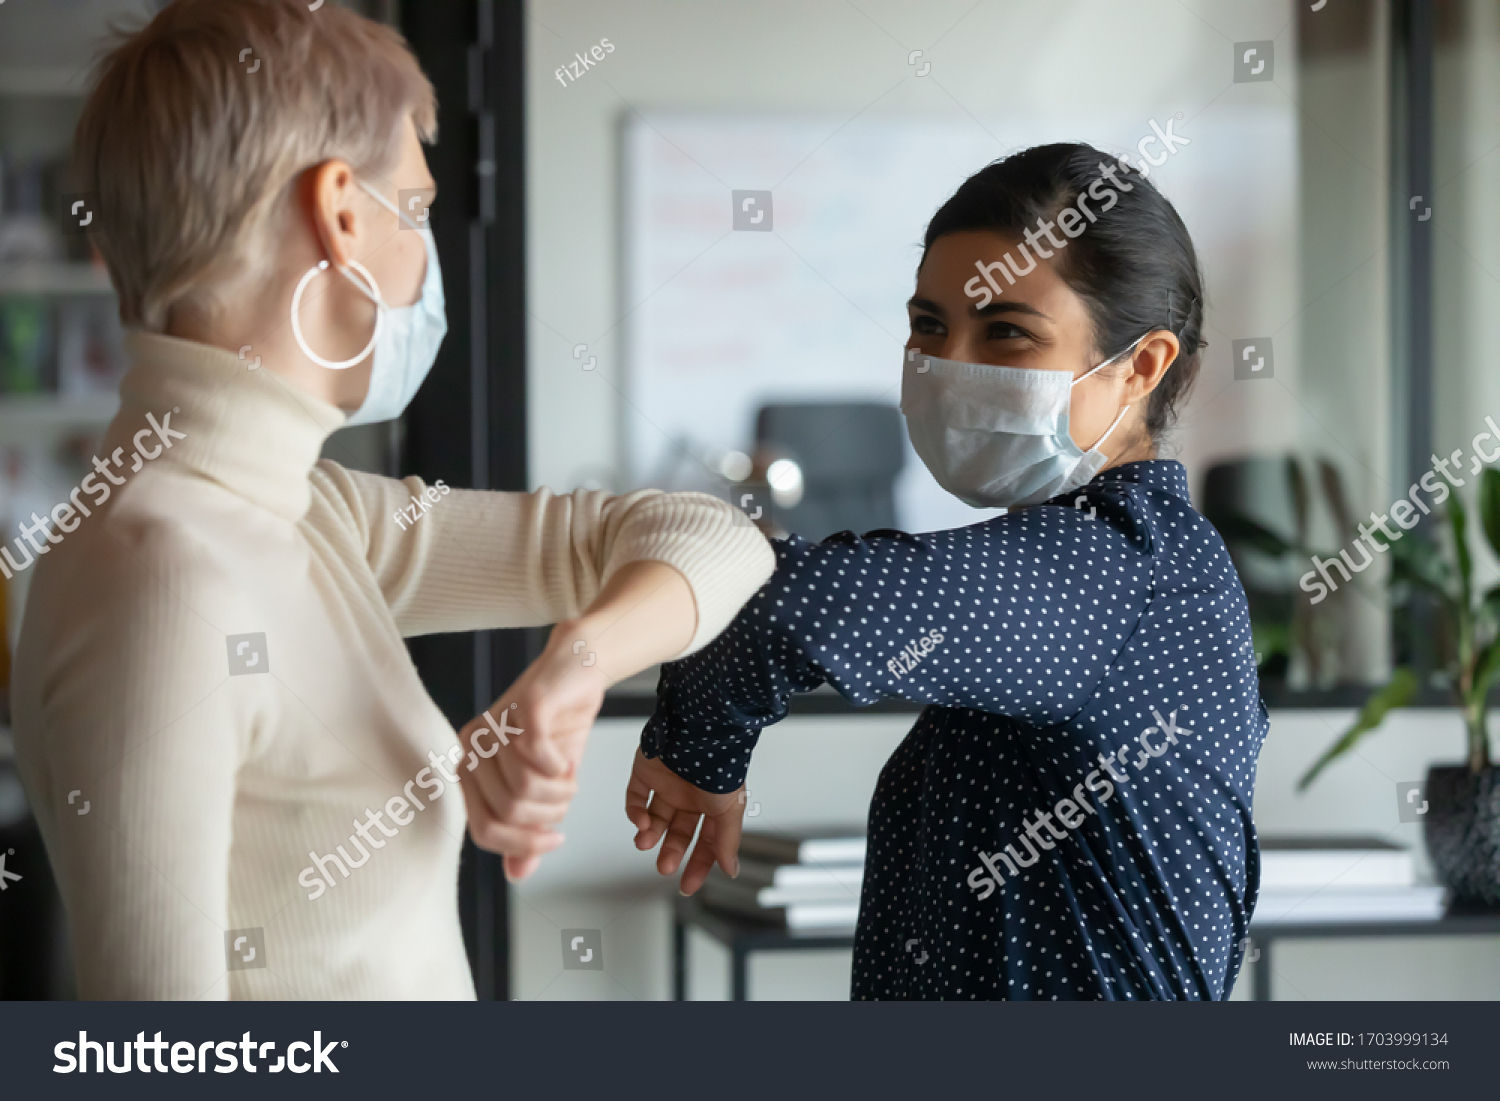 Smiling diverse female colleagues wearing protective face masks greeting bumping elbows at workplace, woman coworkers in facial covers protect from COVID-19 coronavirus in office, healthcare concept #1703999134